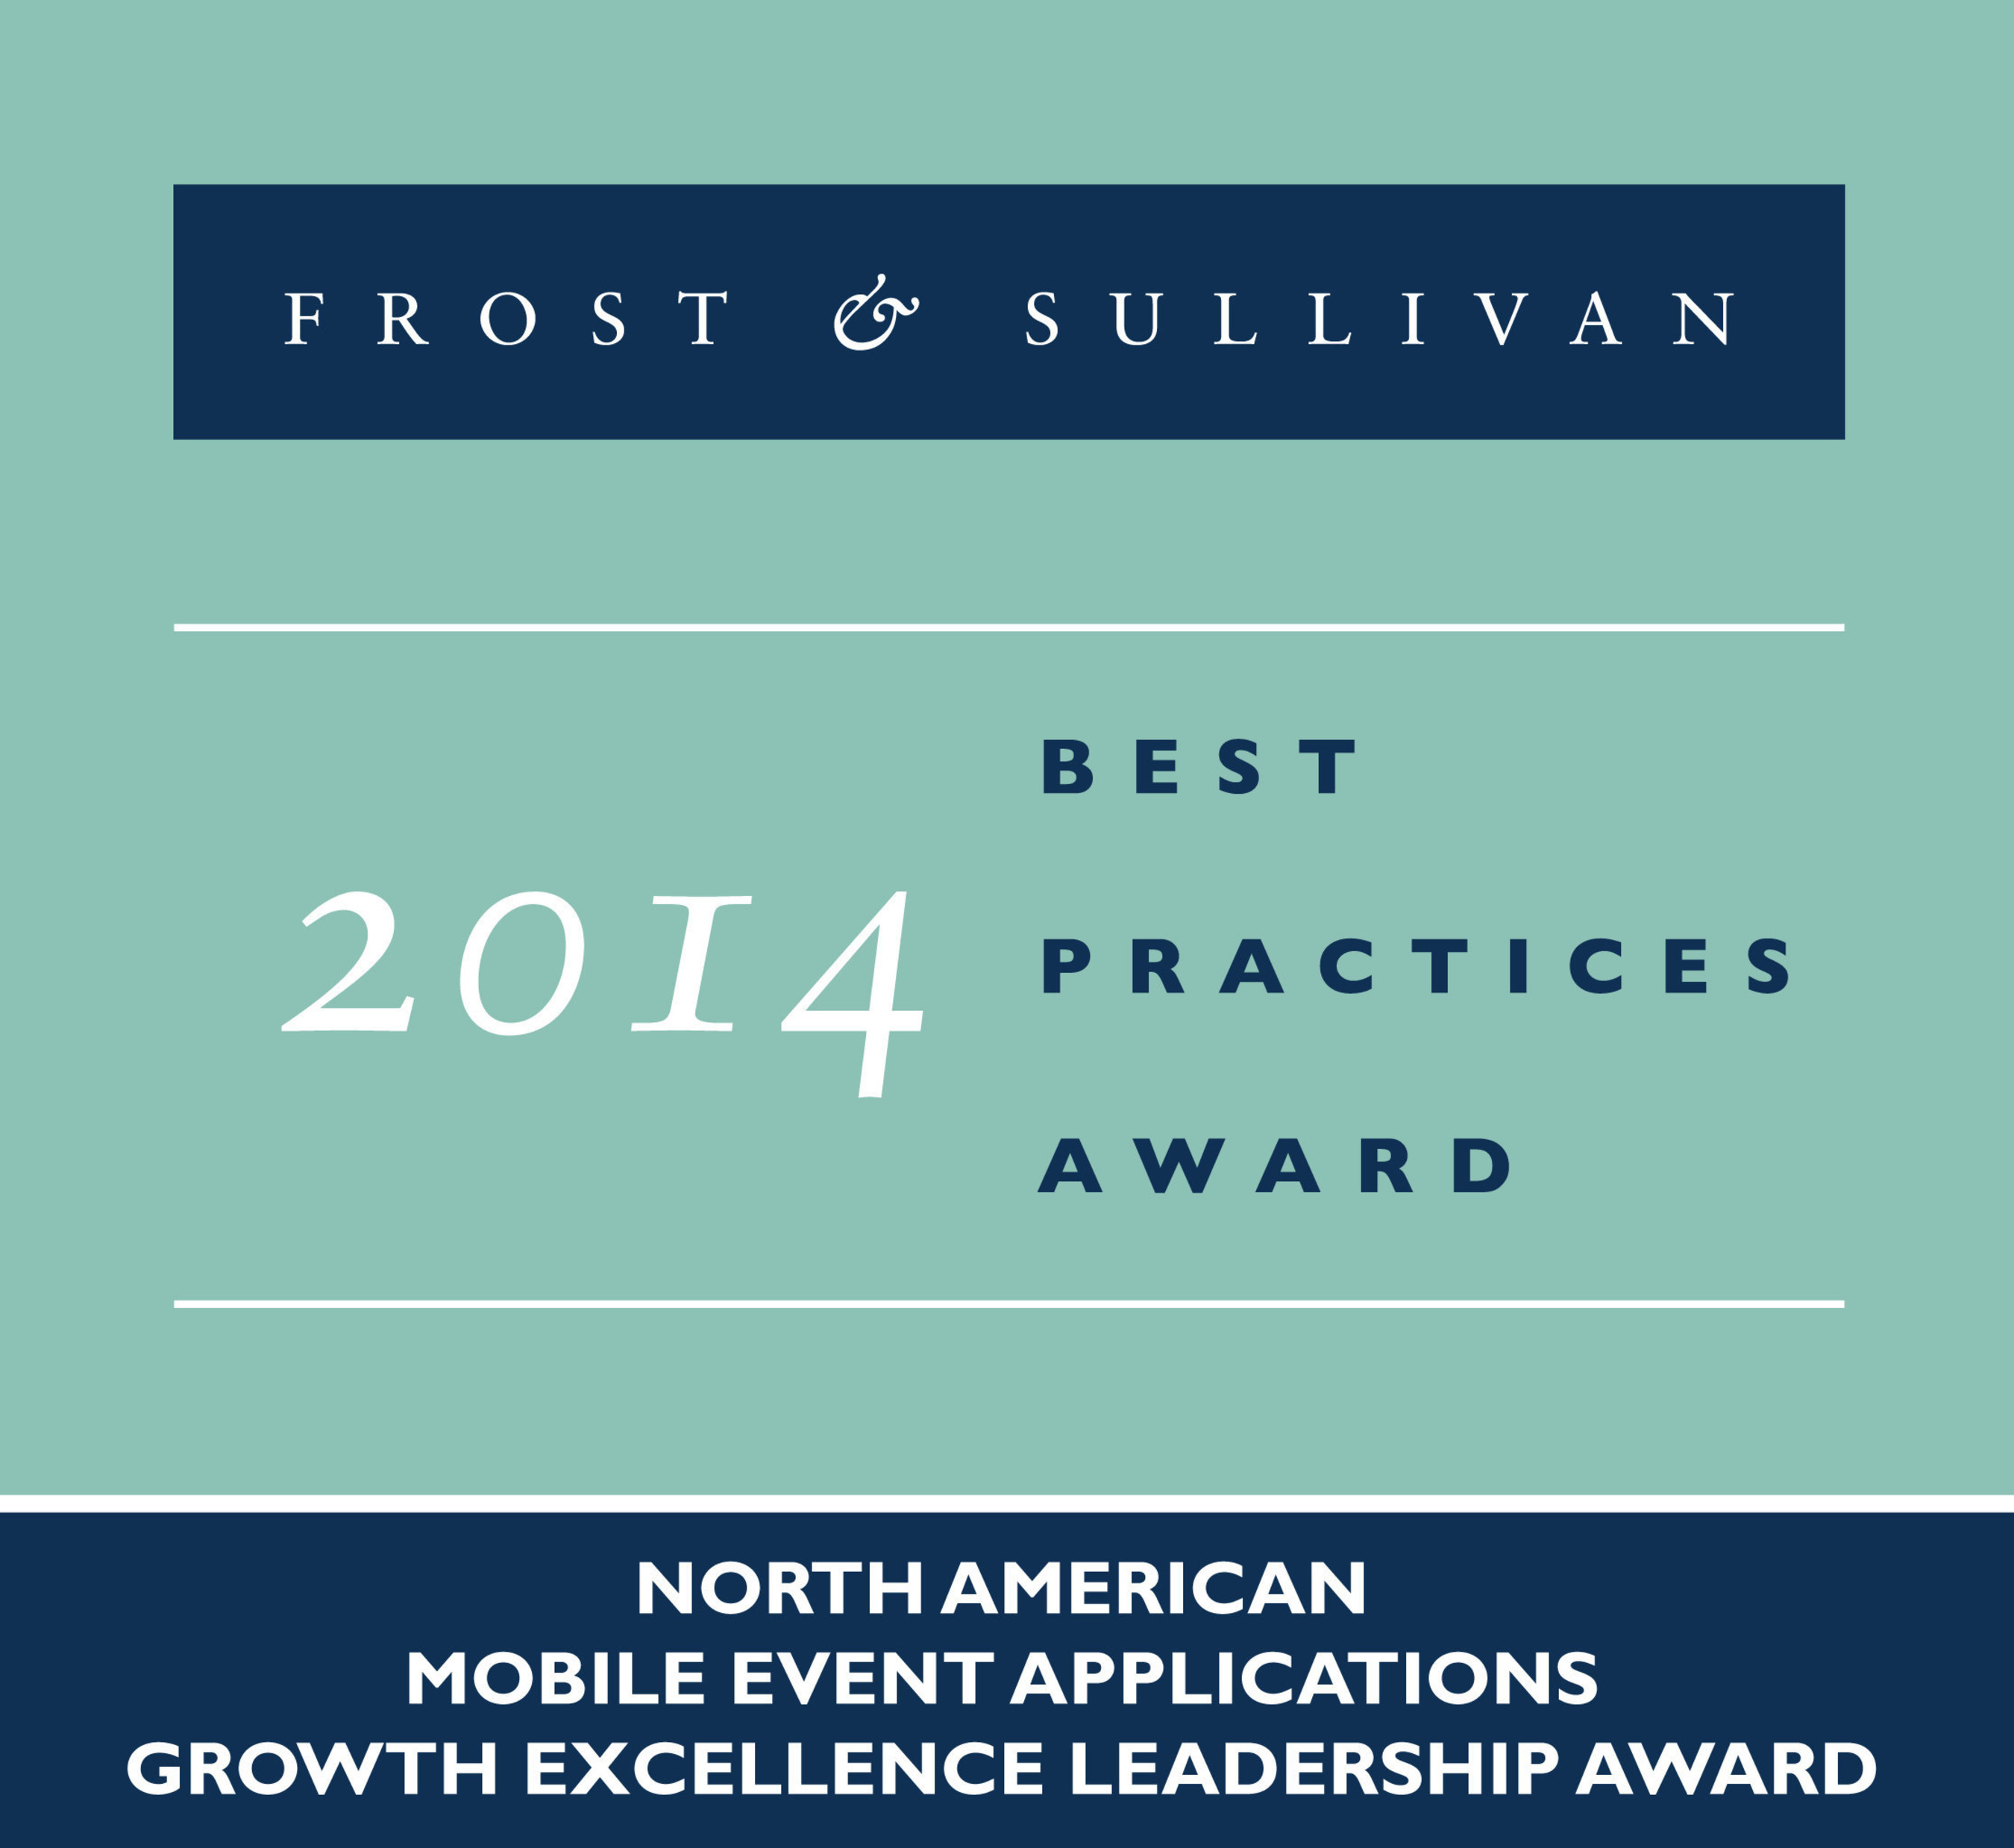 Frost & Sullivan Lauds QuickMobile's Success in Developing Game-Changing Event App and Analytics Platform for Enterprise Customers across Verticals